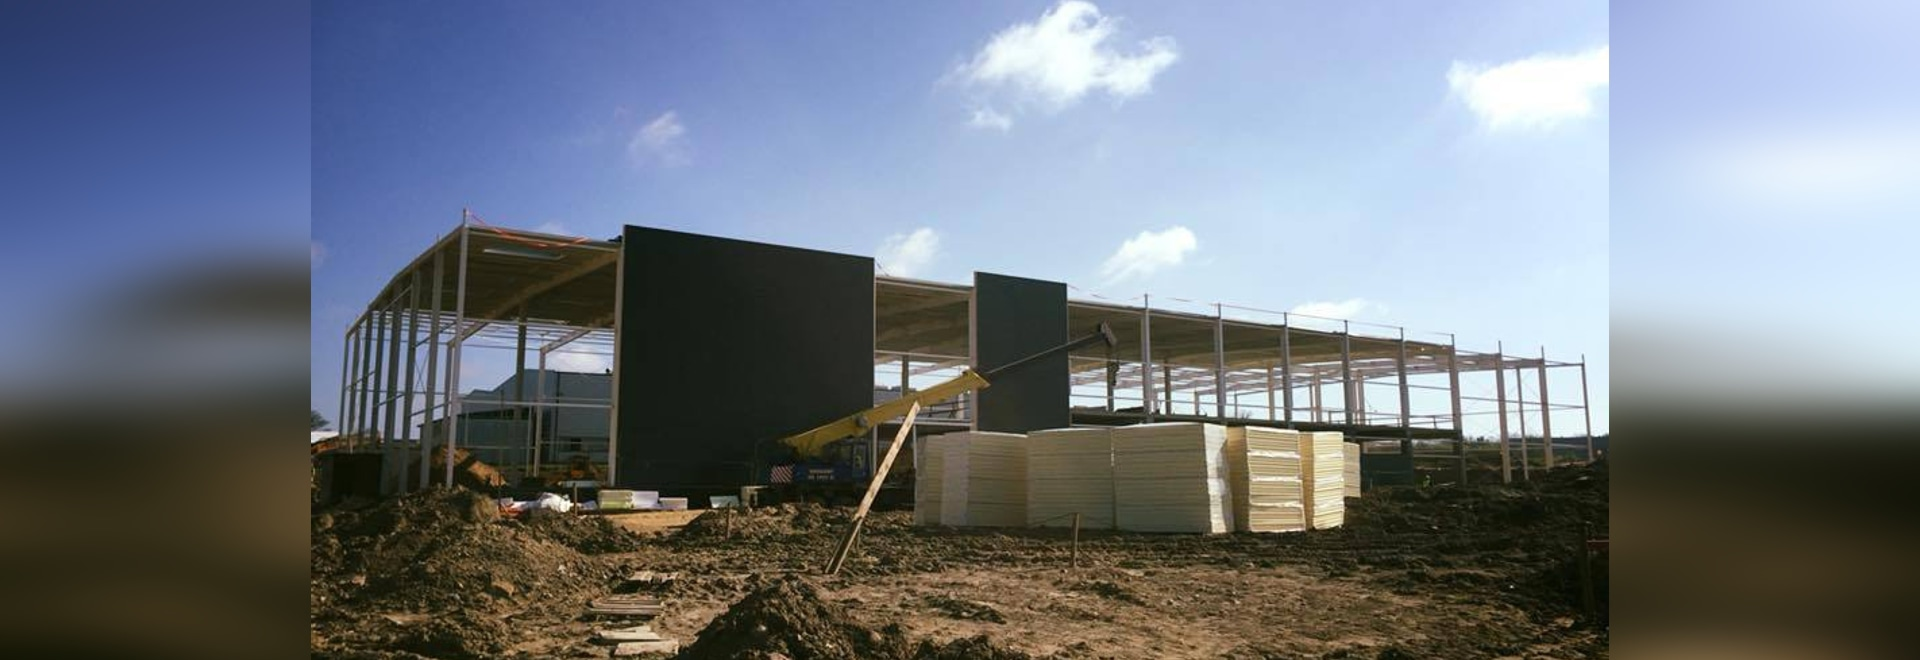 CONSTRUCTION OF A NEW FACTORY